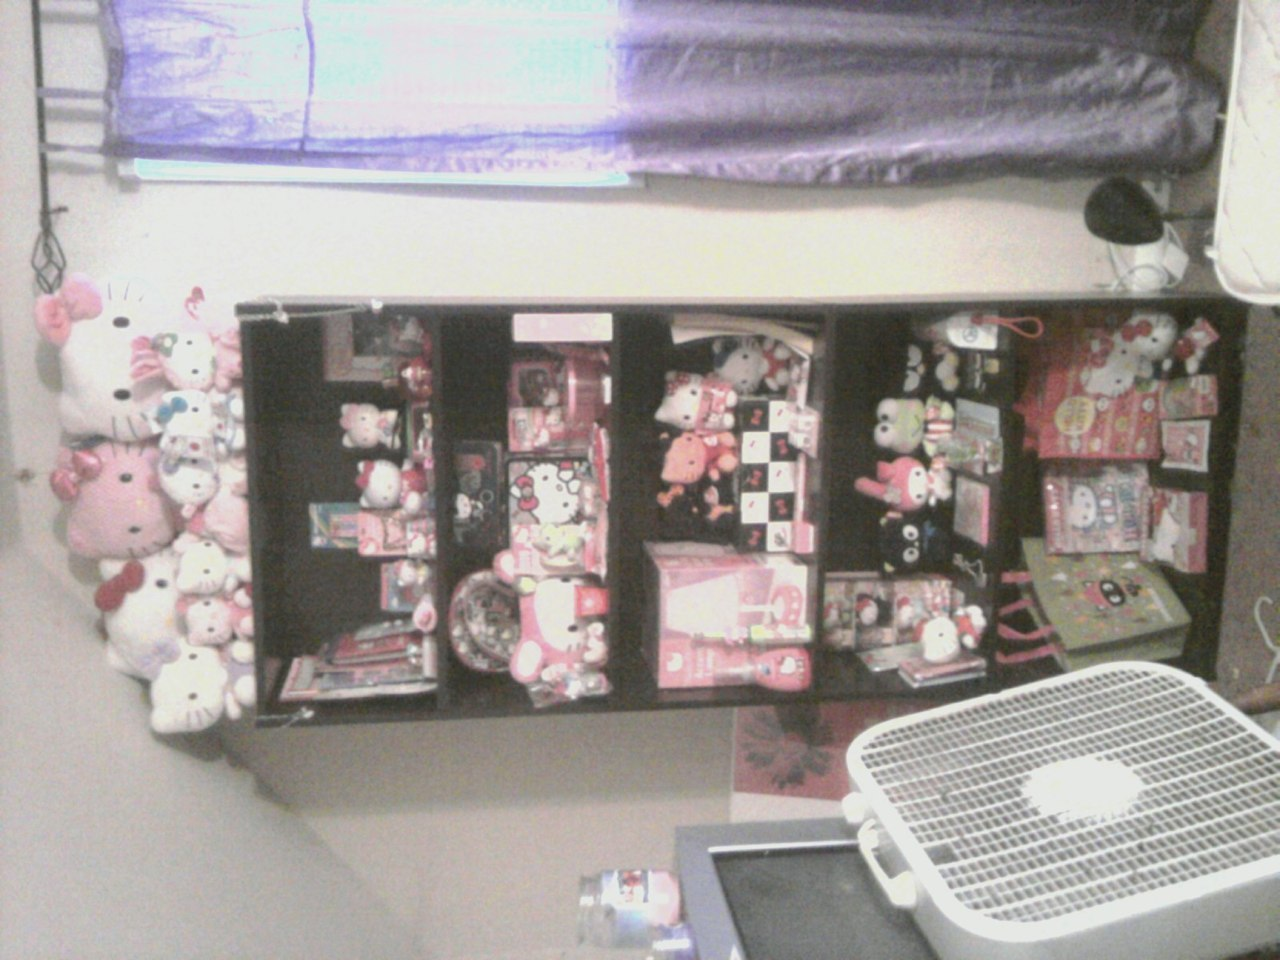 My Hello Kitty collection C: Not all of it would fit on the book shelf >.<